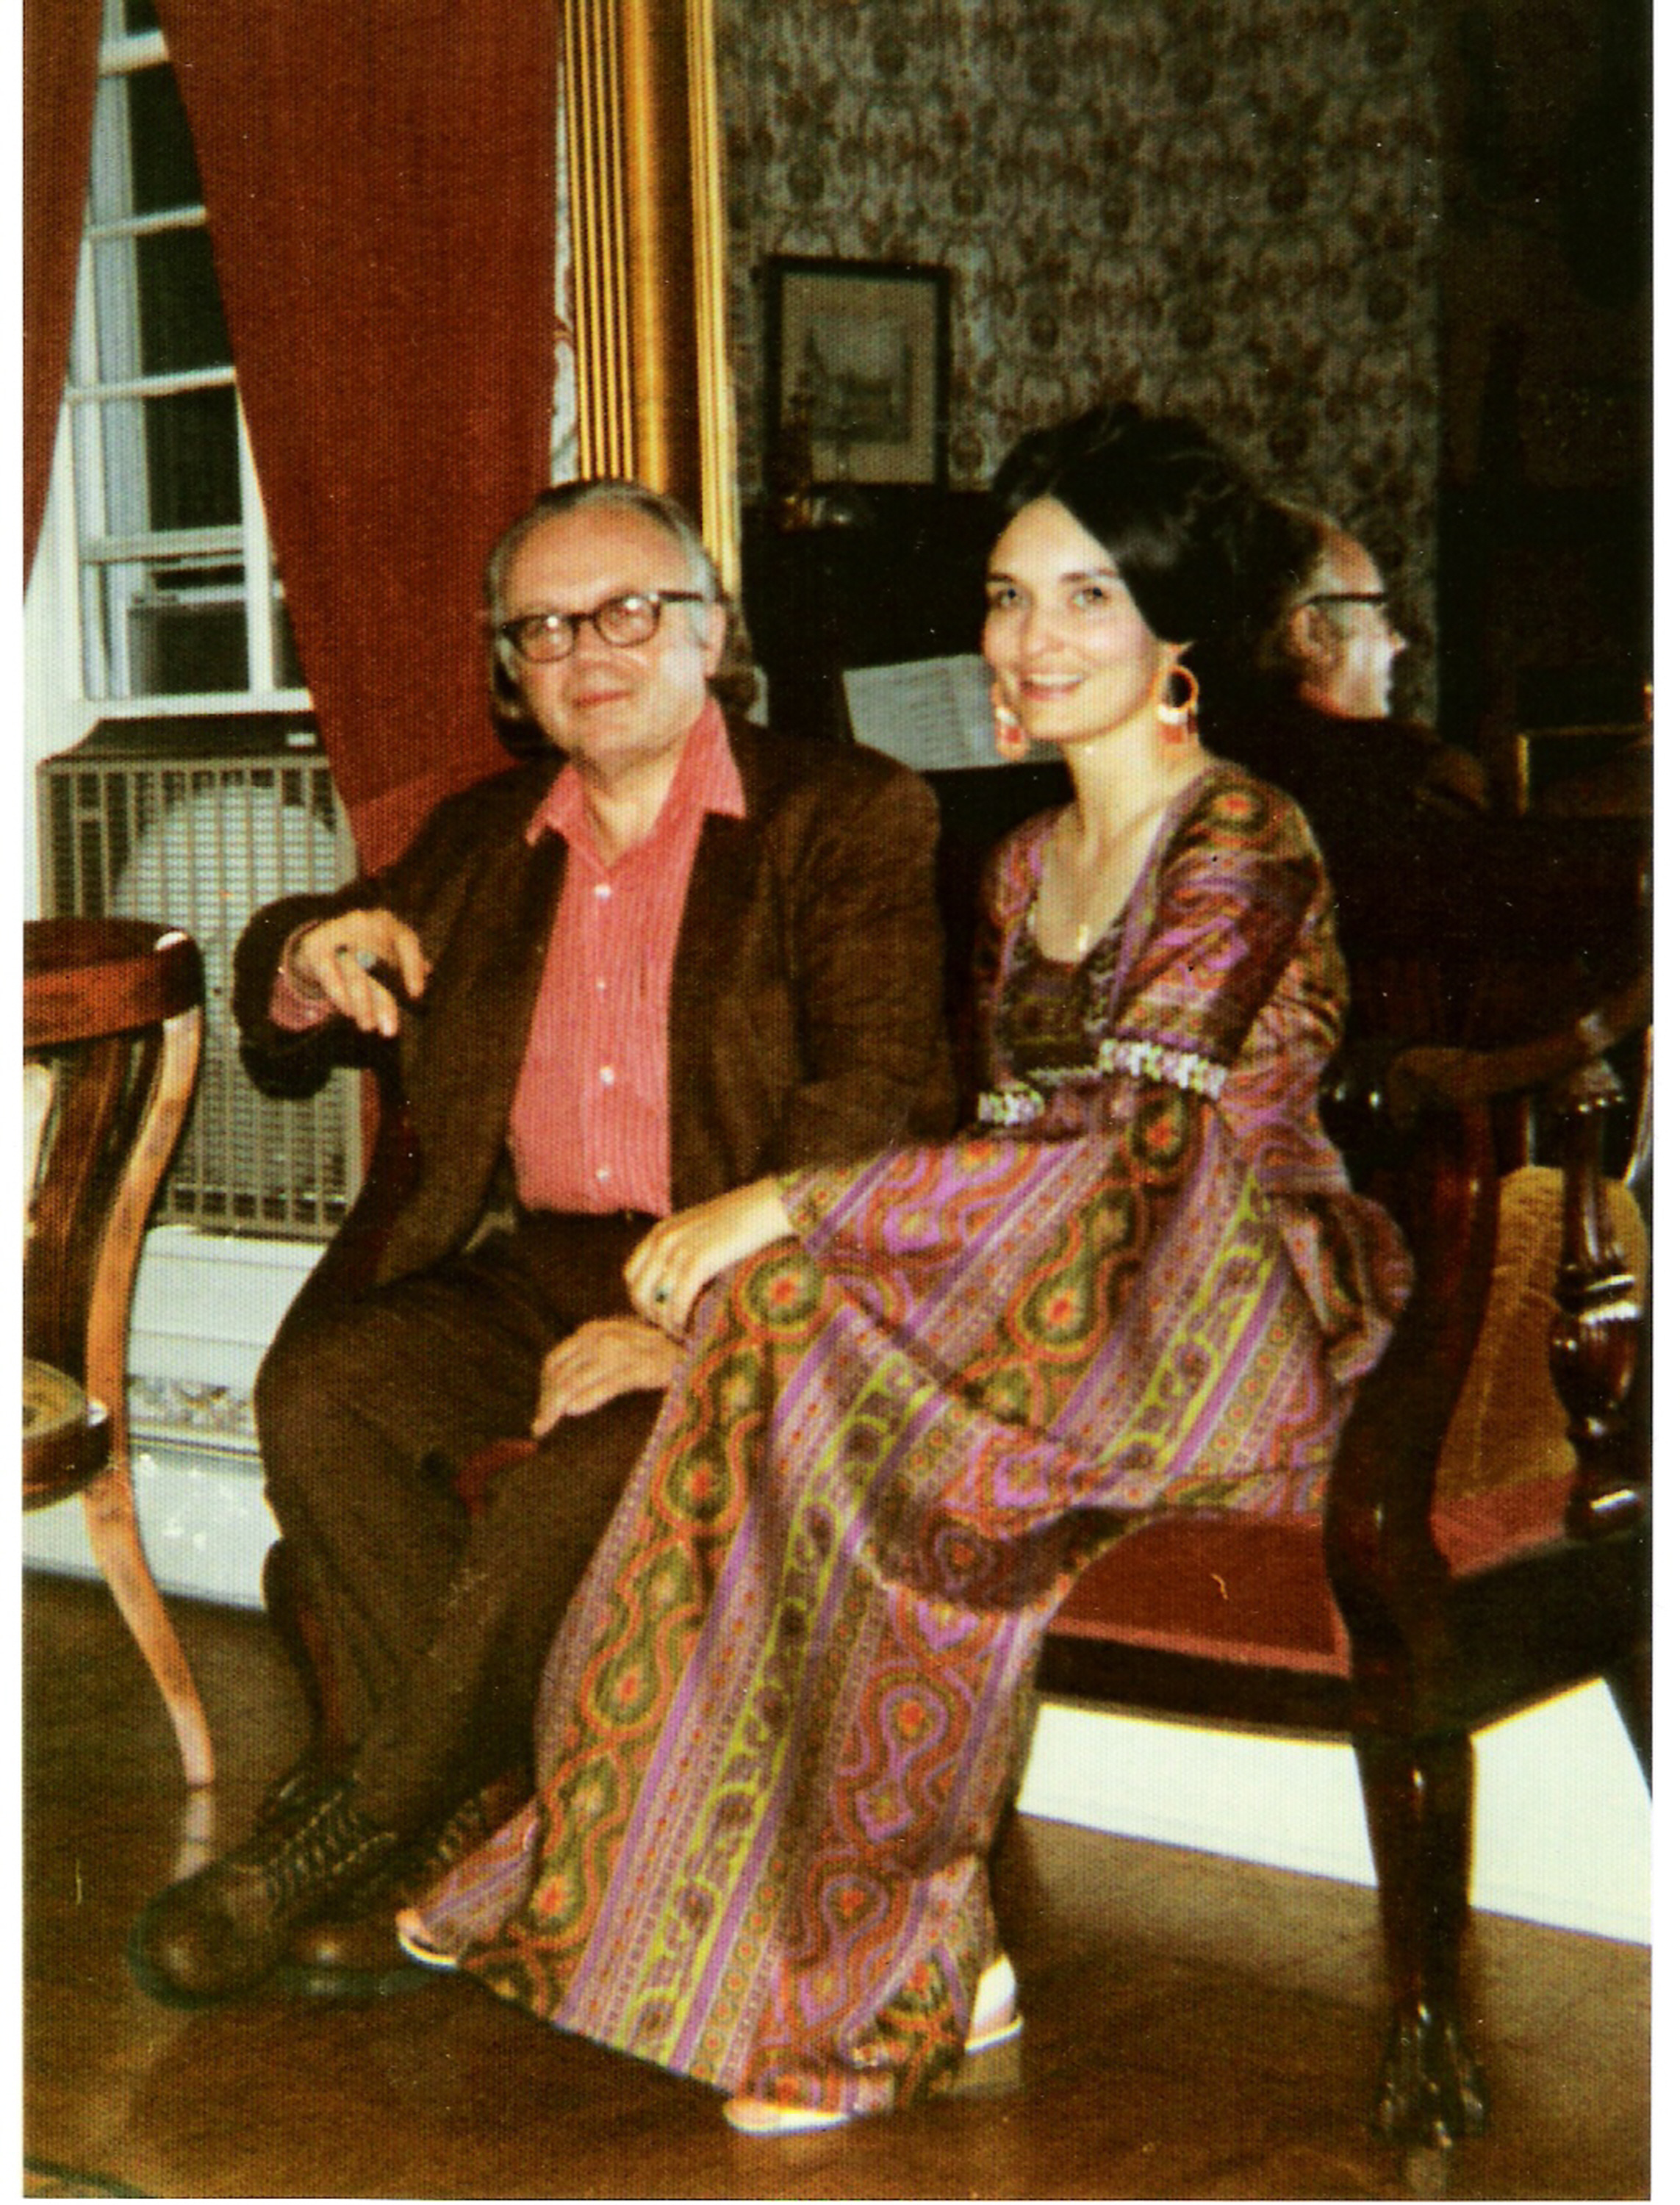 Russell and Annette in their drawing room in the 1970s.